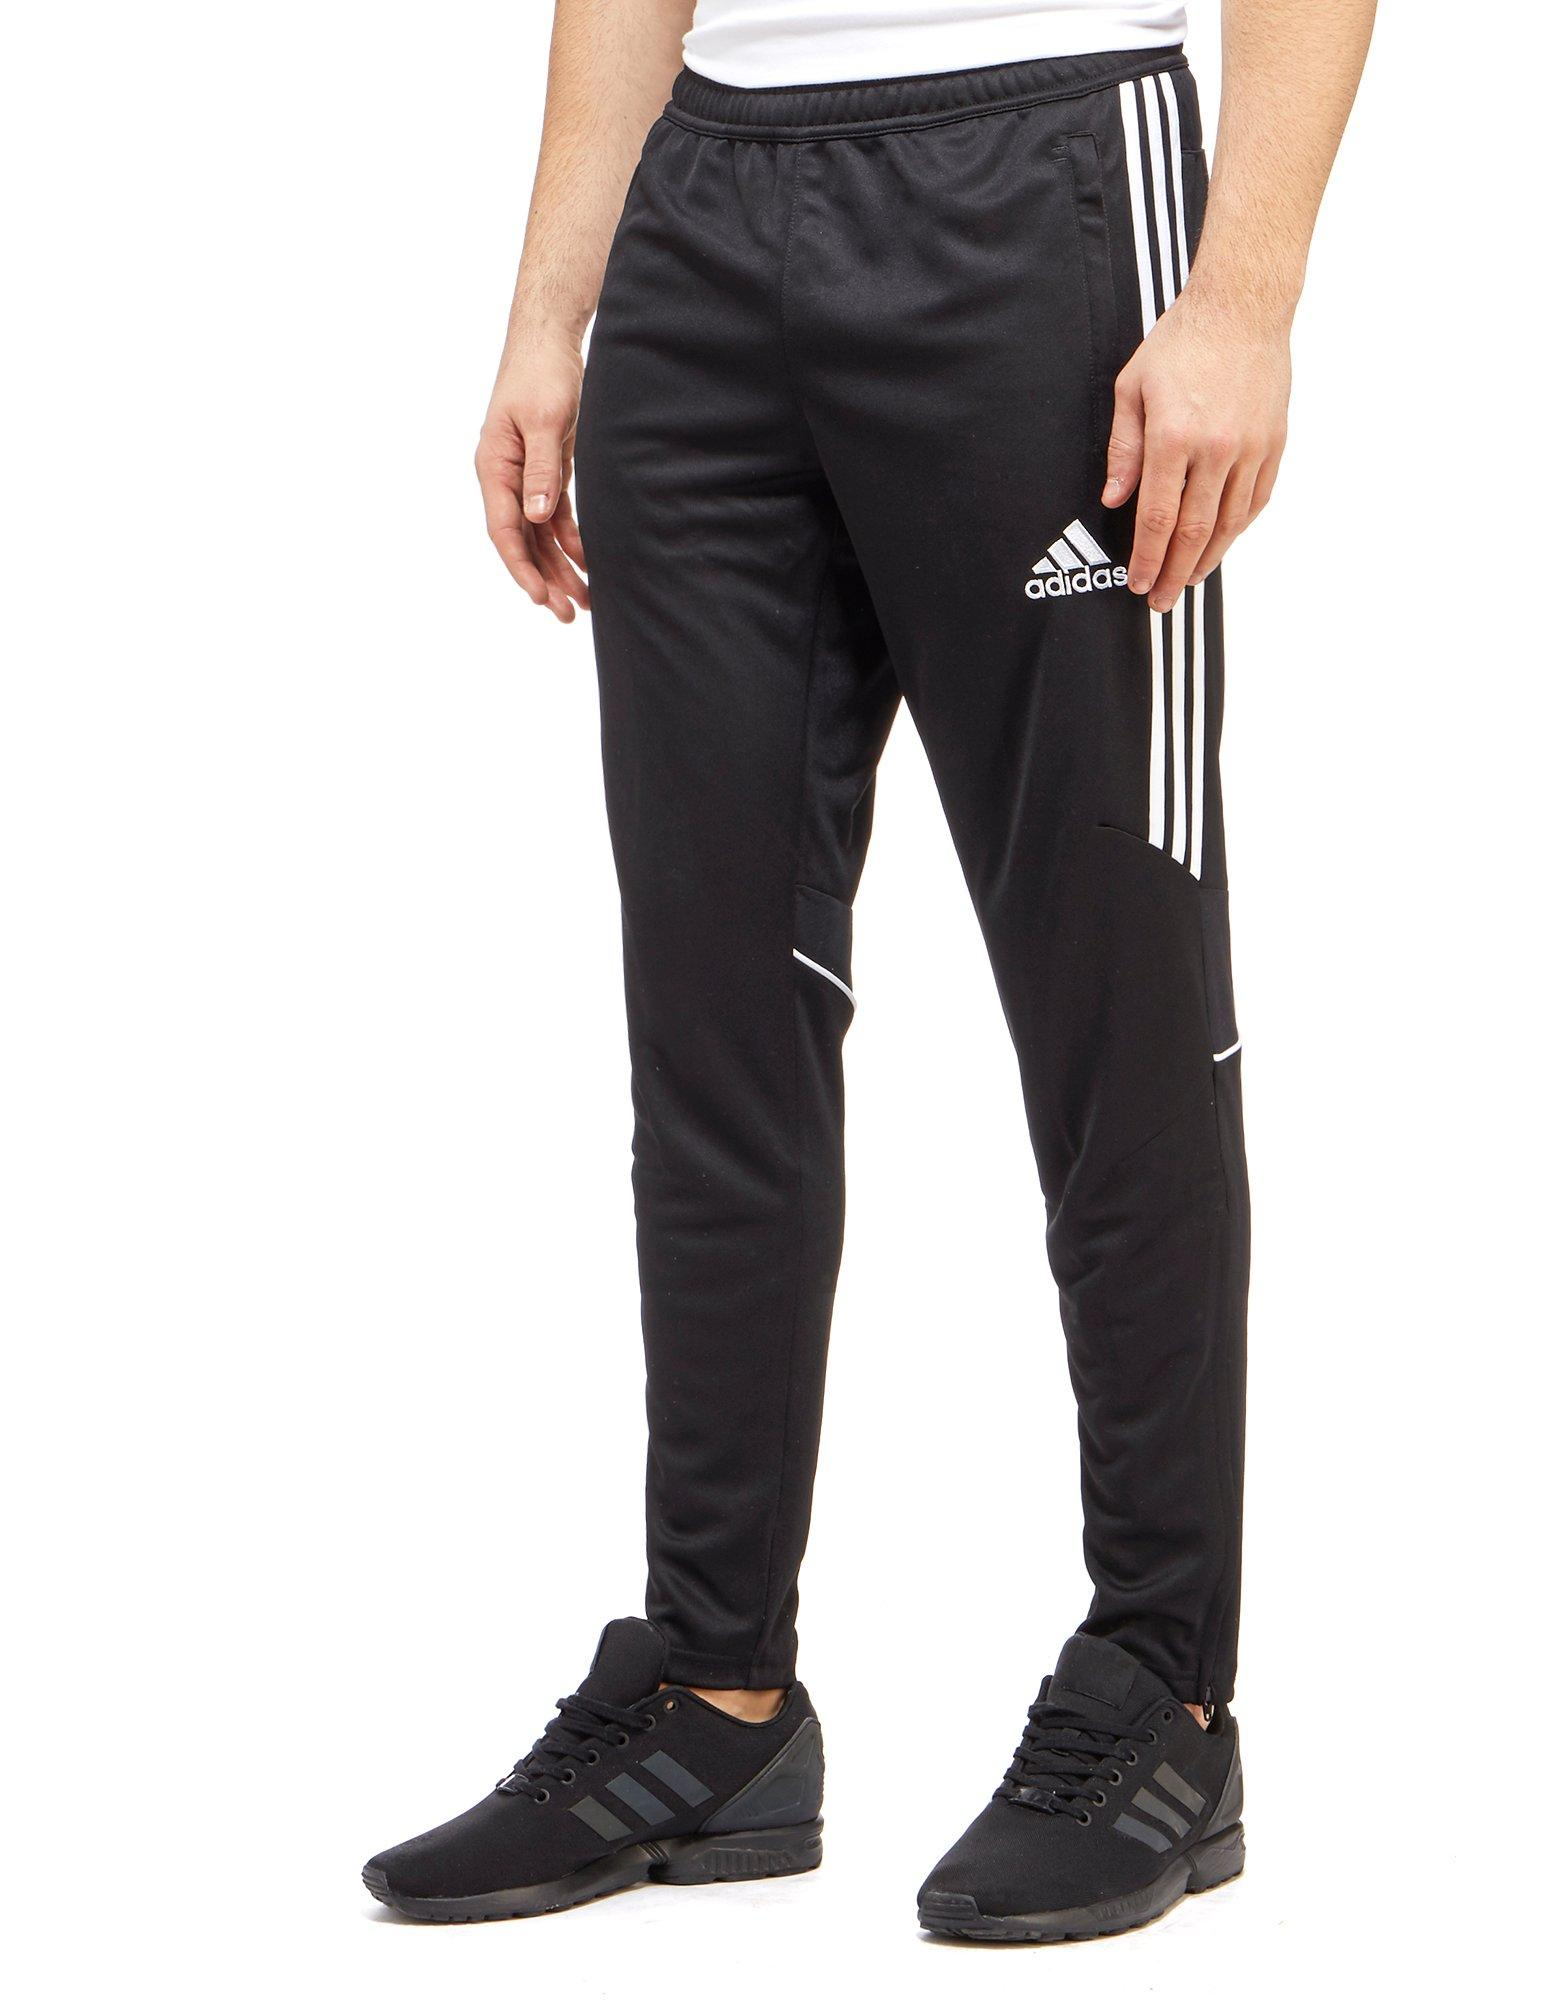 Adidas tracksuit bottoms – perfect sports inspired apparels!